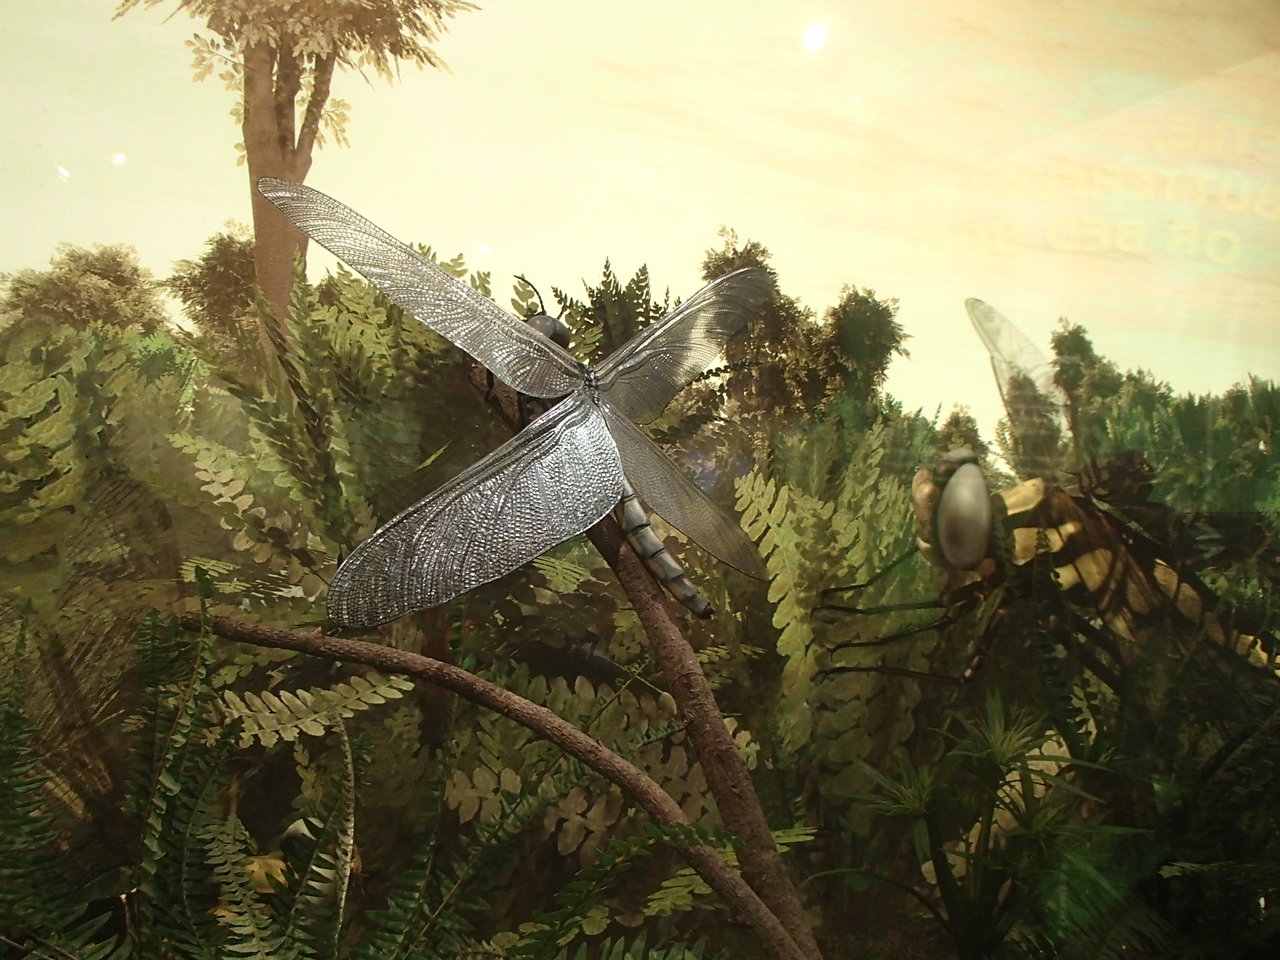 This is how big dragonflies used to be